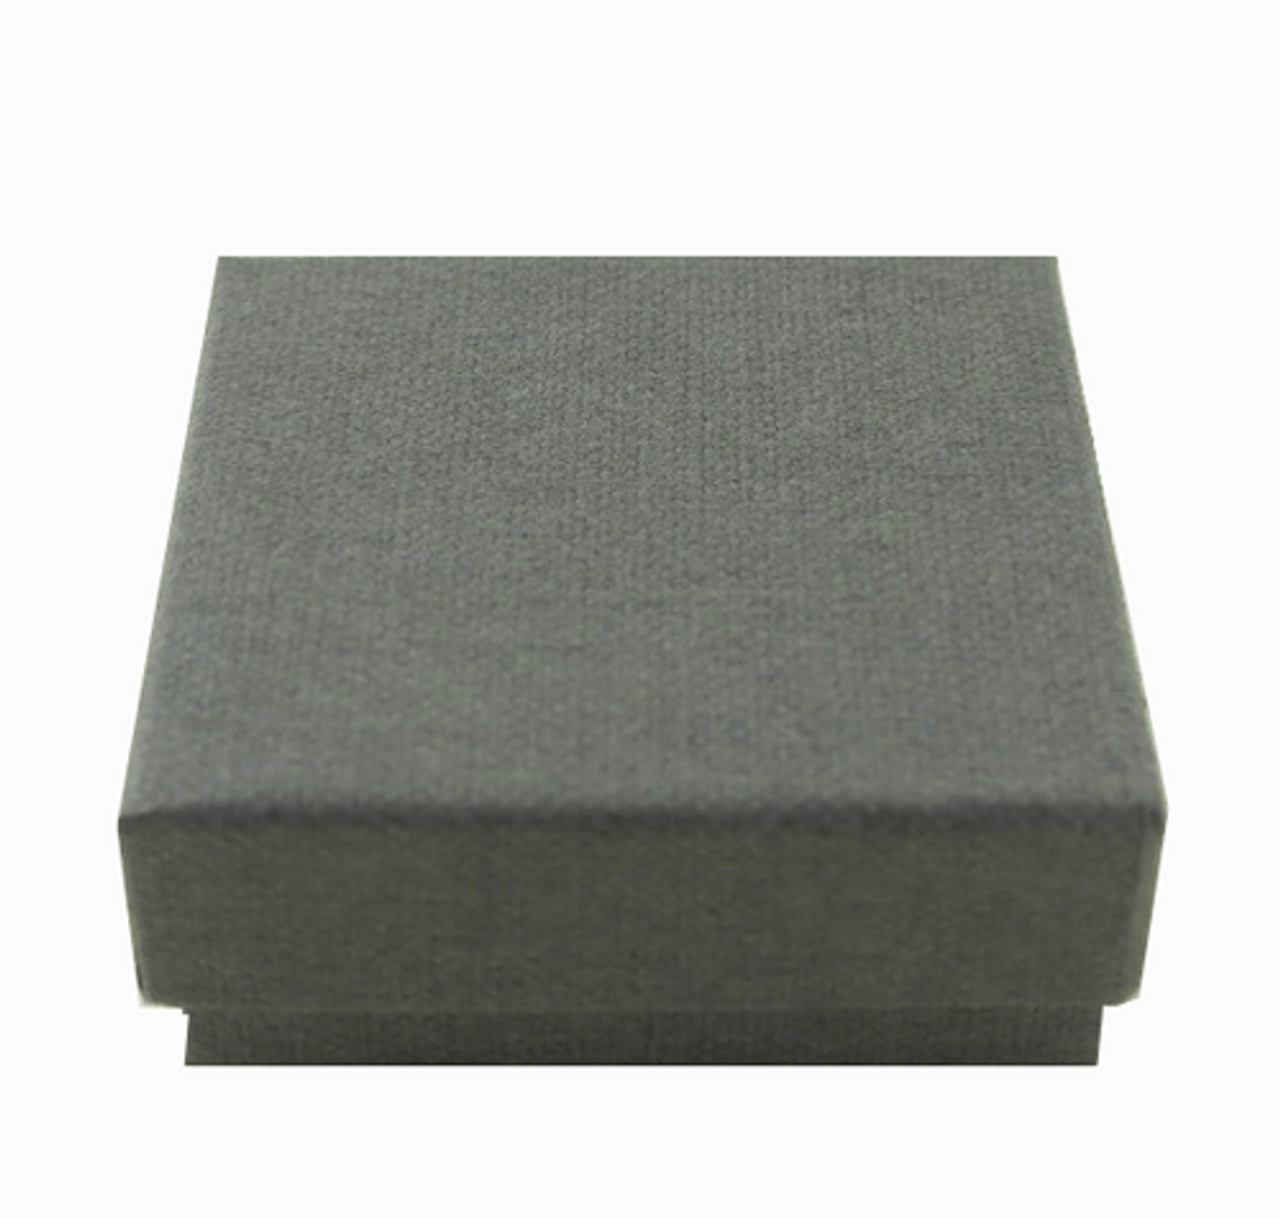 Classic Grey Textured Paper 2 Piece Earring Box